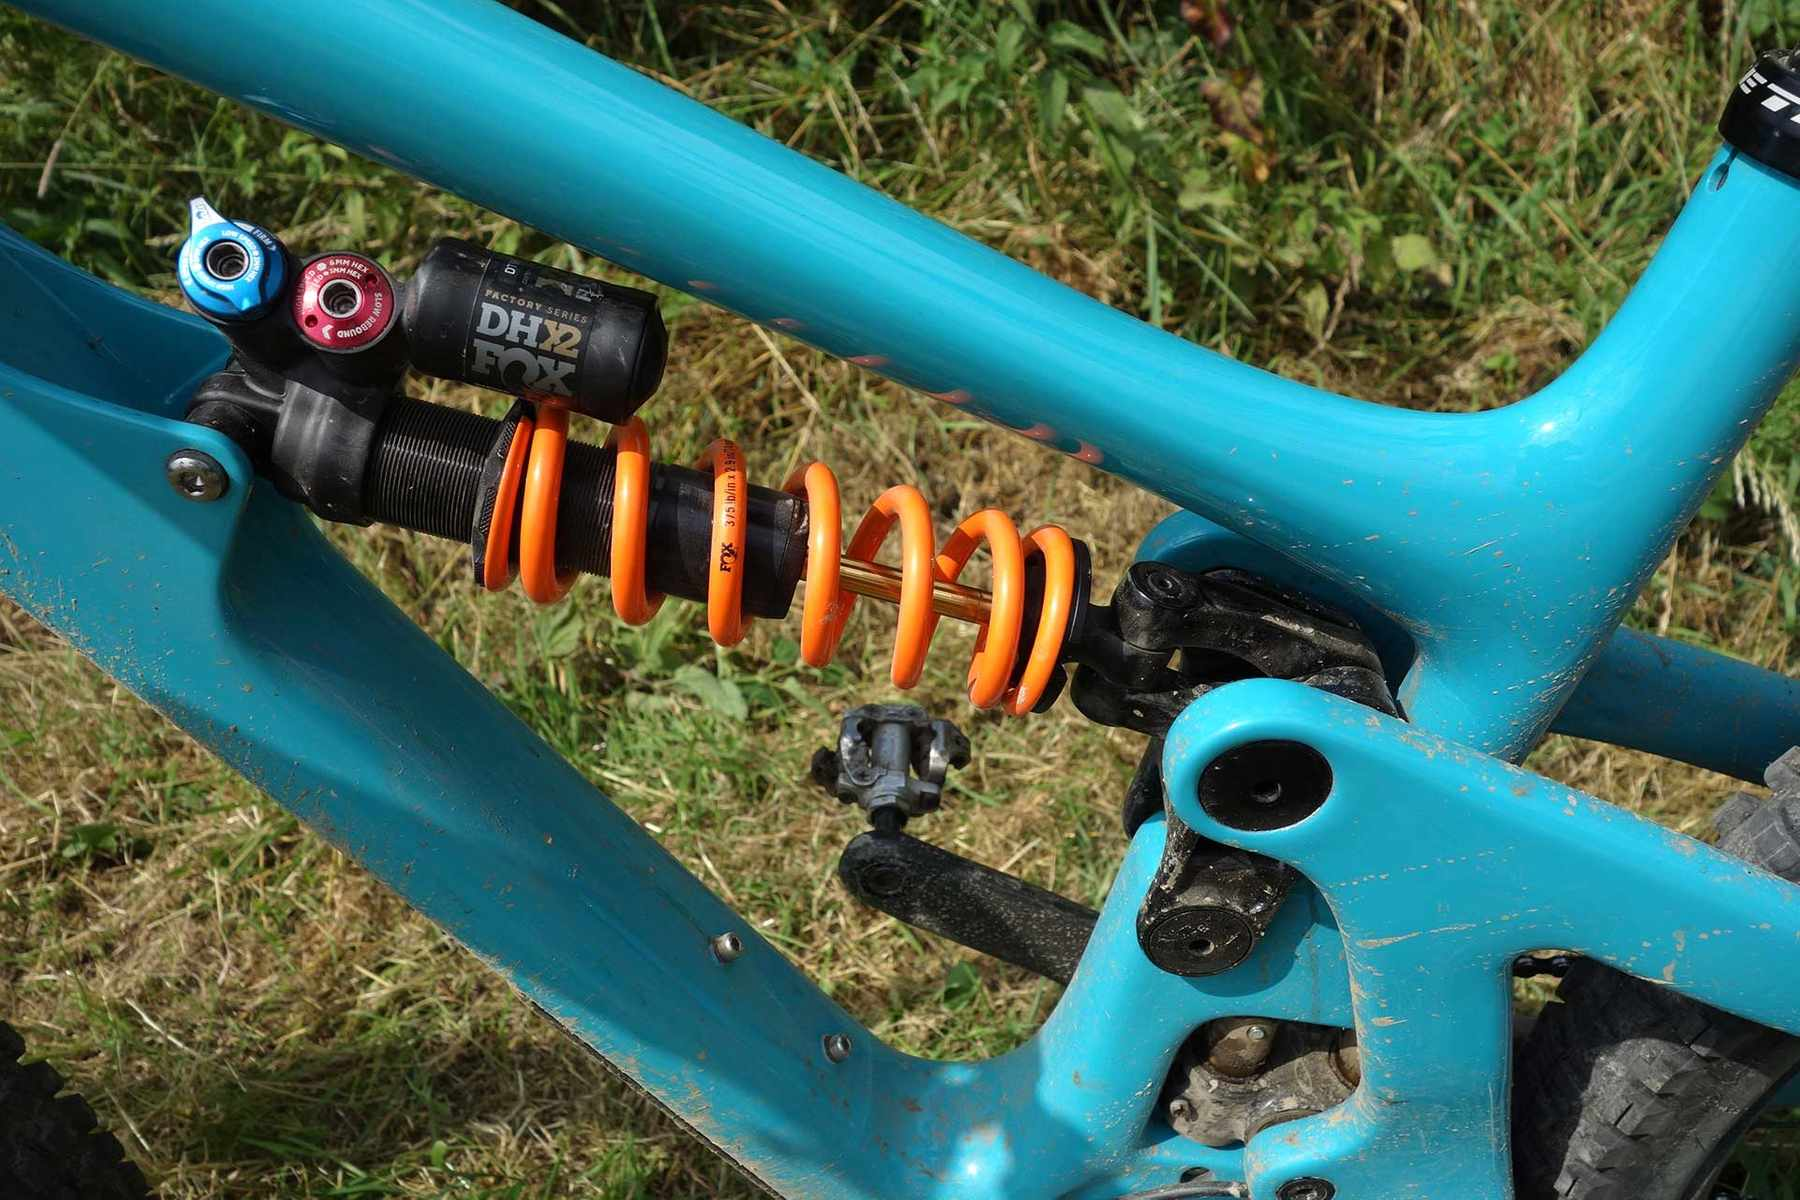 Fox DHX2 rear shock